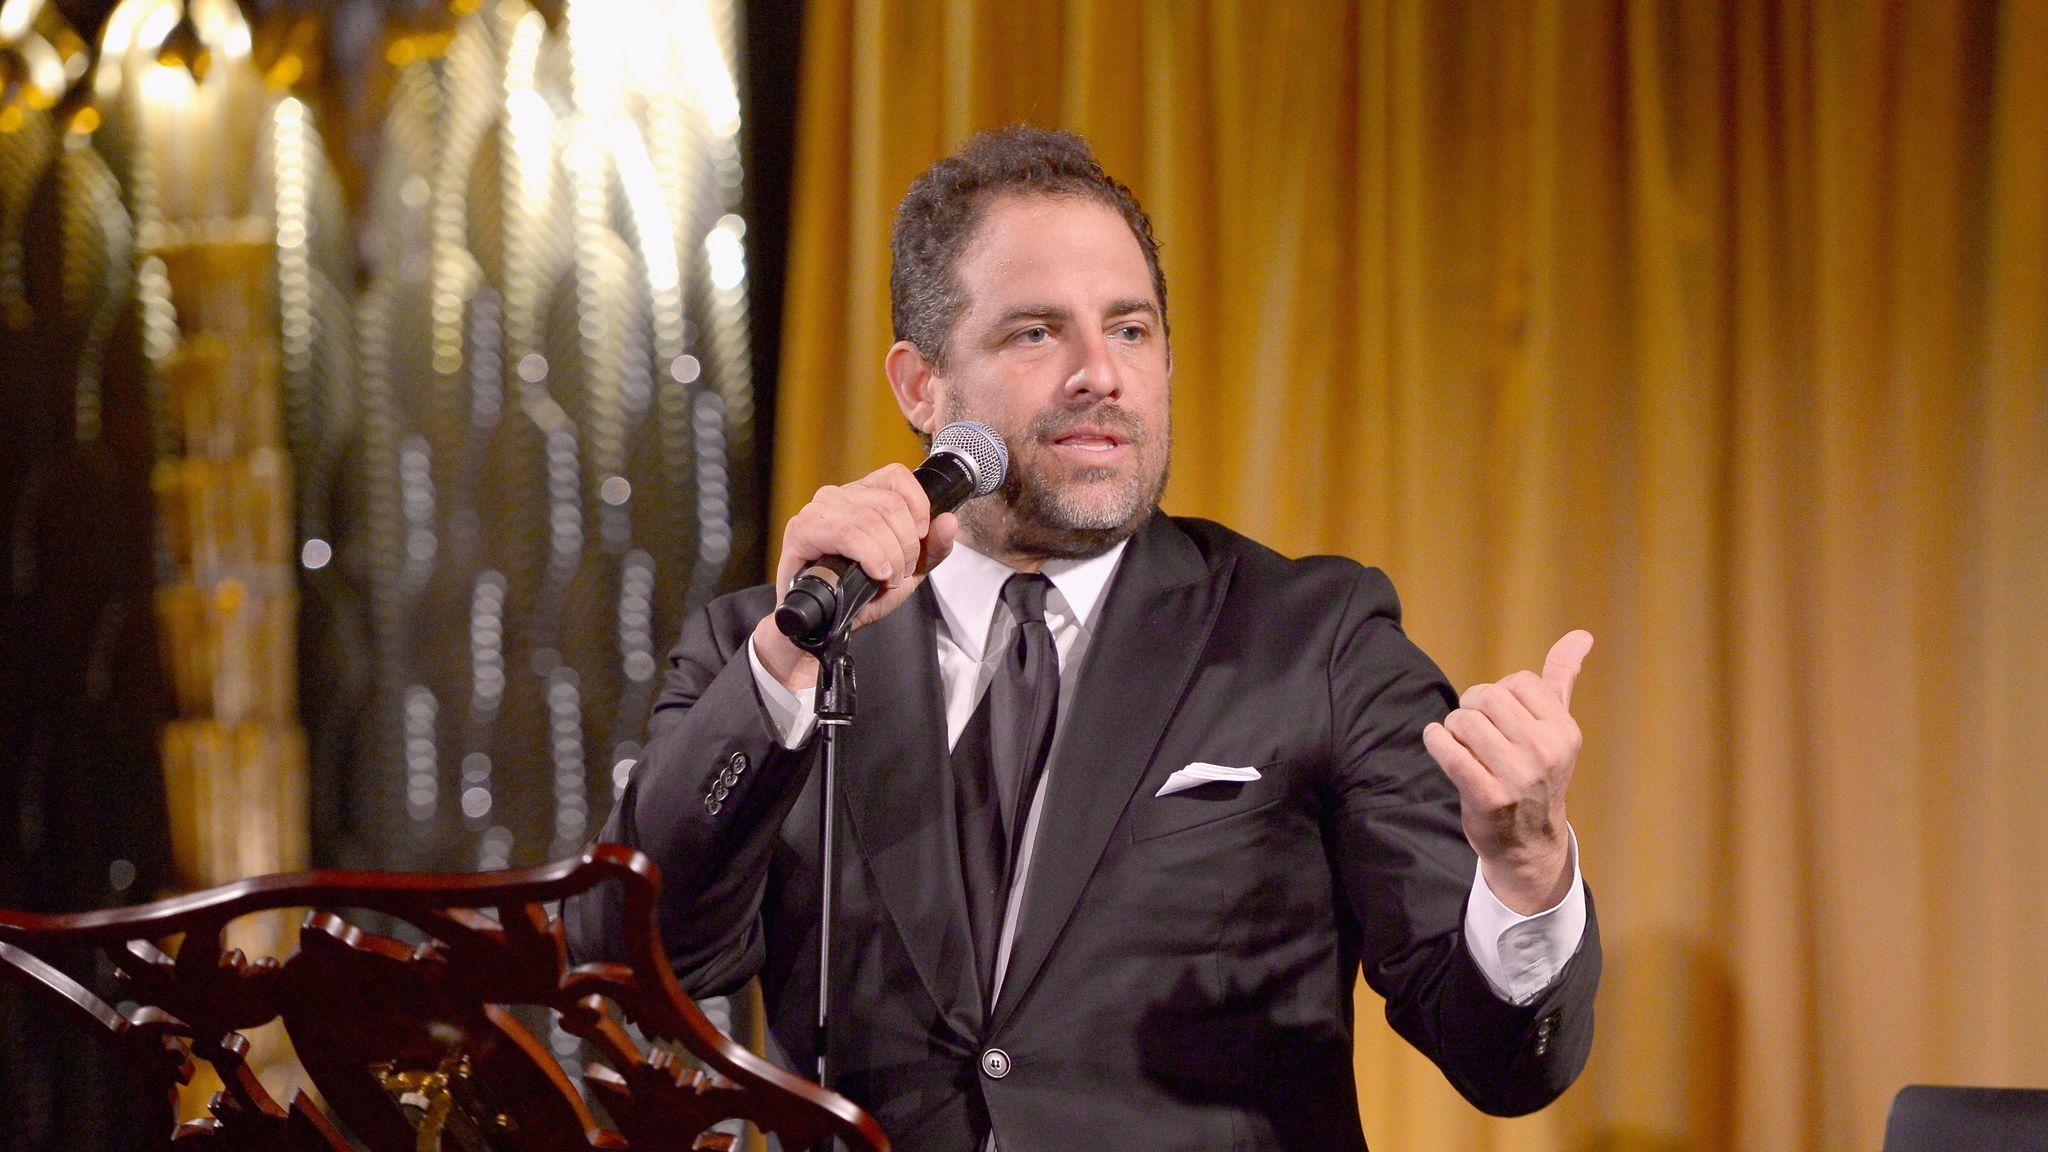 Host Brett Ratner speaks during an event for United Nations Secretary-General Ban Ki-moon at Hilhaven Lodge in 2016.